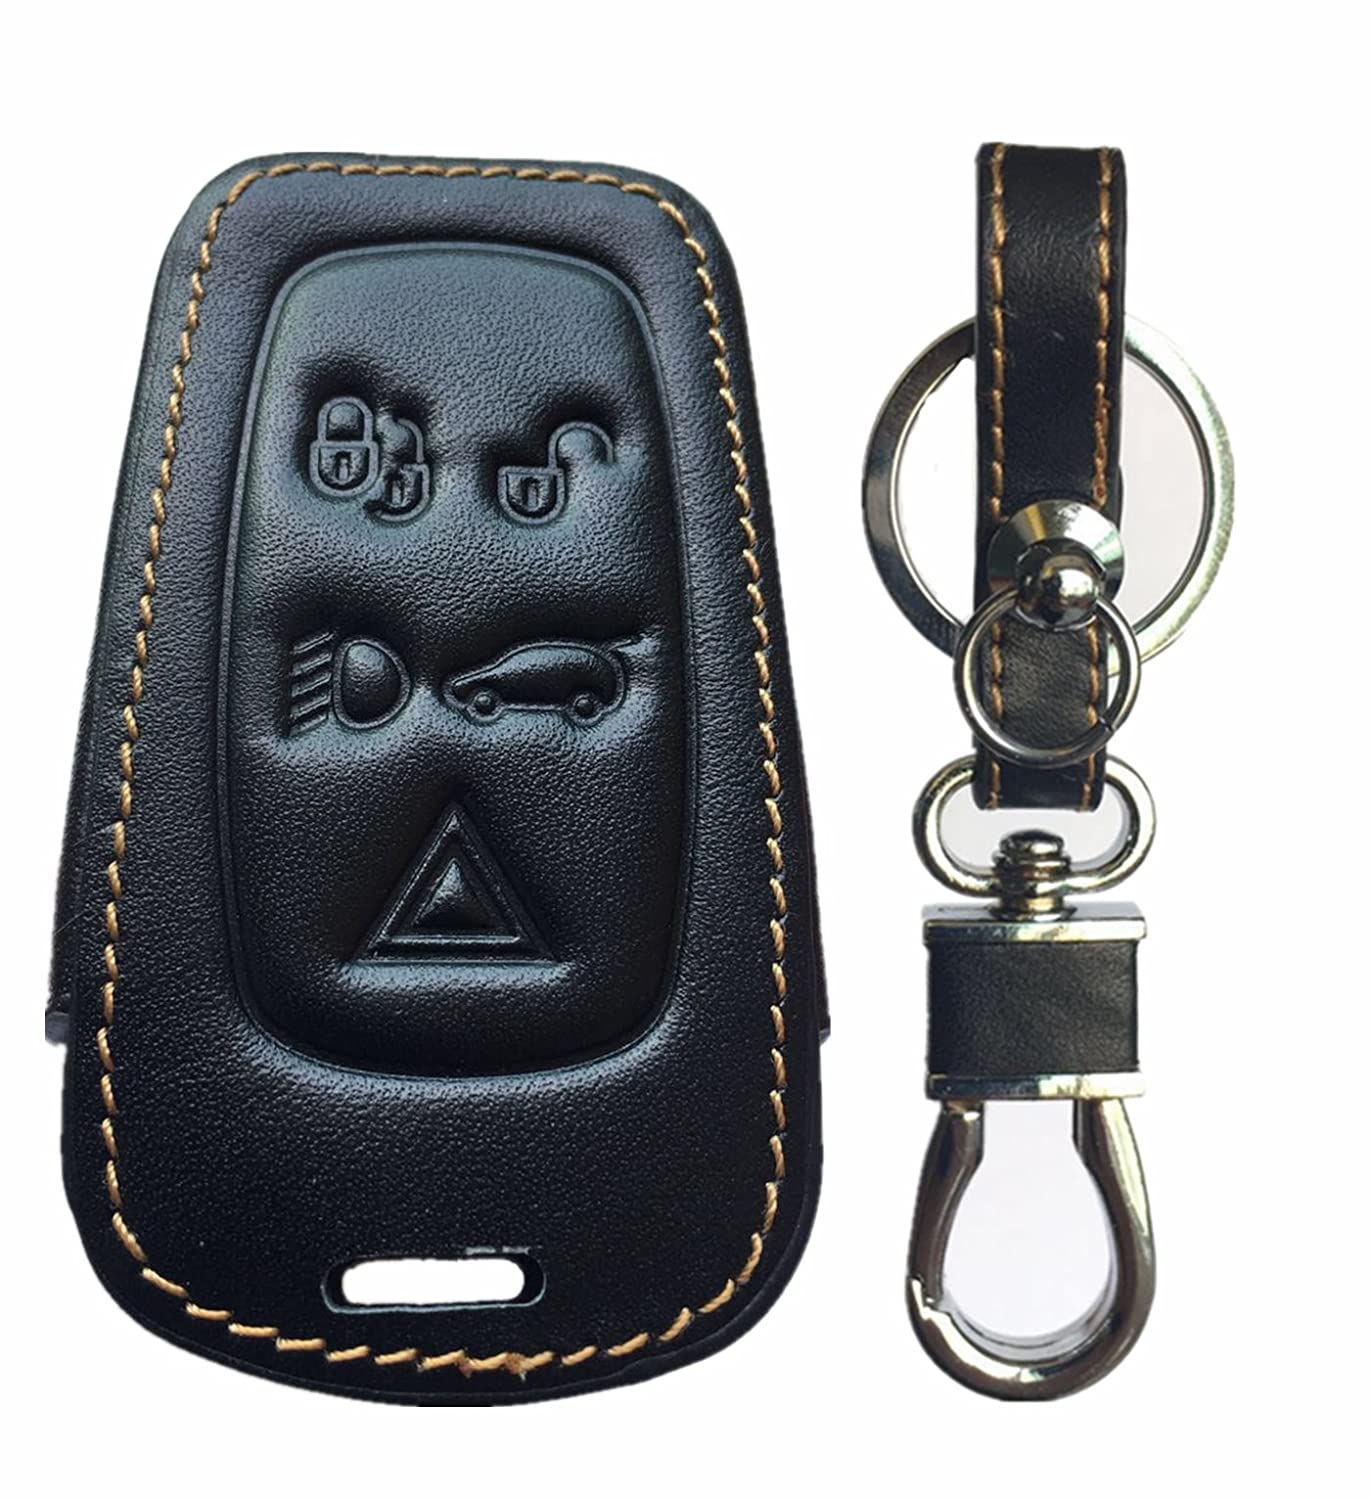 Rpkey Leather Keyless Entry Remote Control Key Fob Cover Case protector For 2010 2011 2012 Land Rover Discovery LR4 Range Rover Sport LR052882 KOBJTF10A LR052905